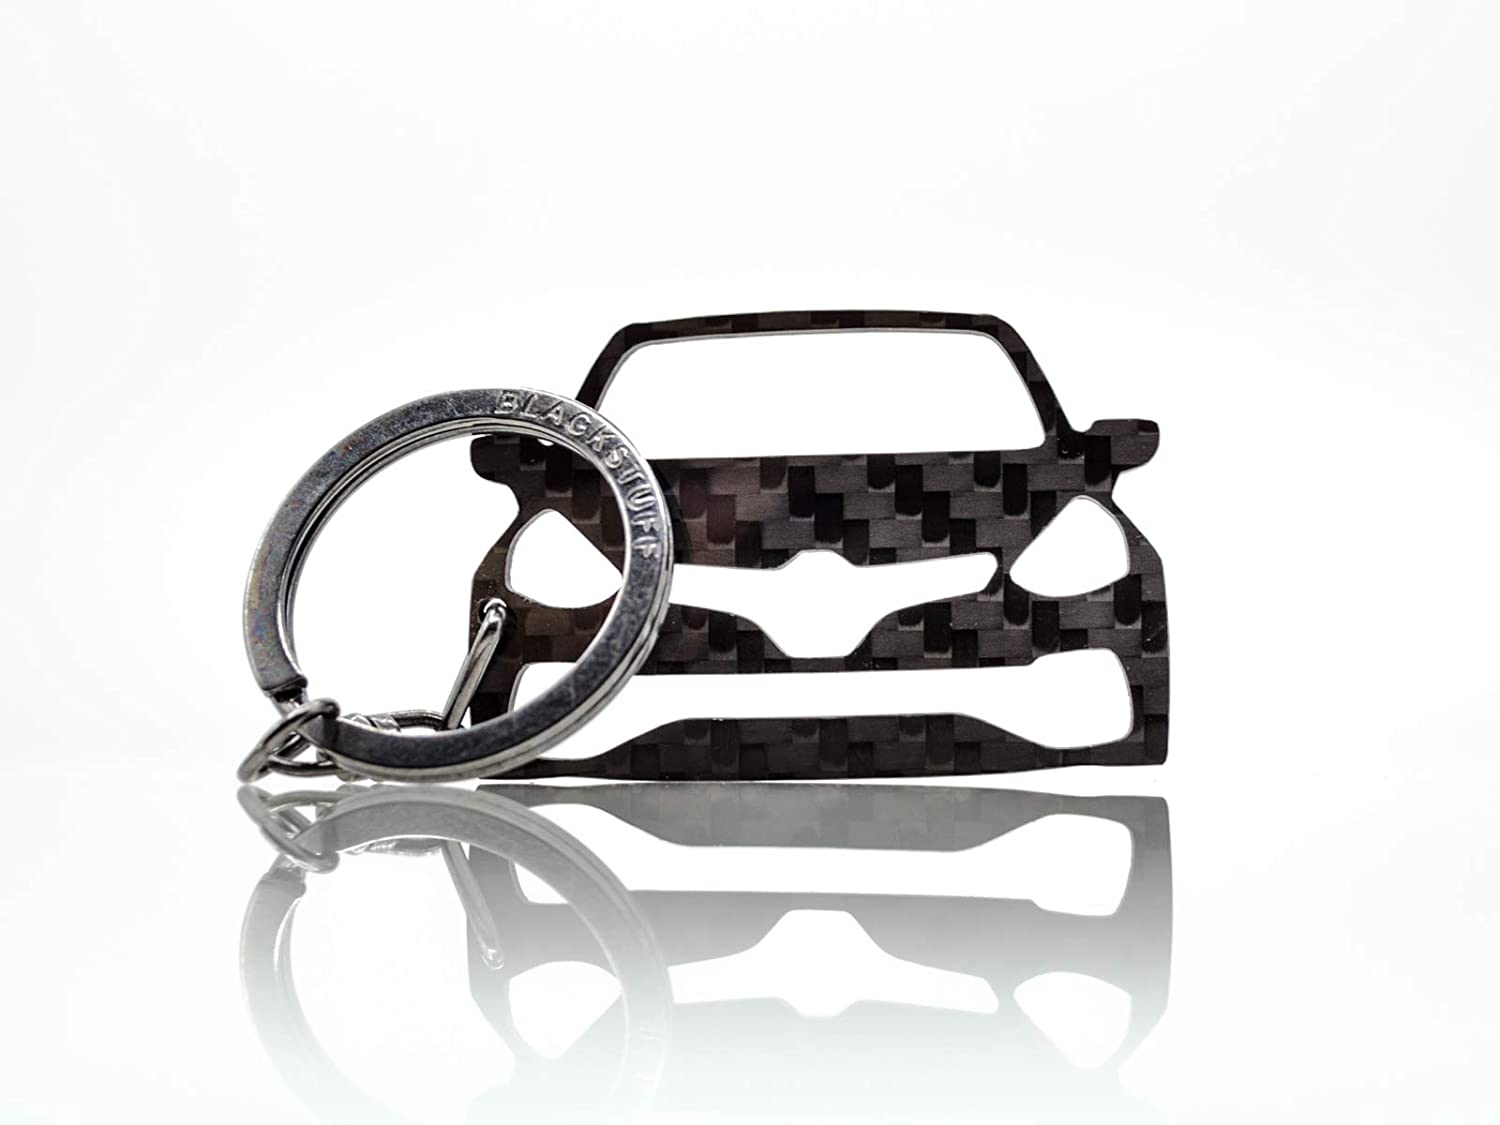 BlackStuff Carbon Fiber Keychain Keyring Ring Holder Compatible with Clio IV Sport RS 2012-2019 BS-664